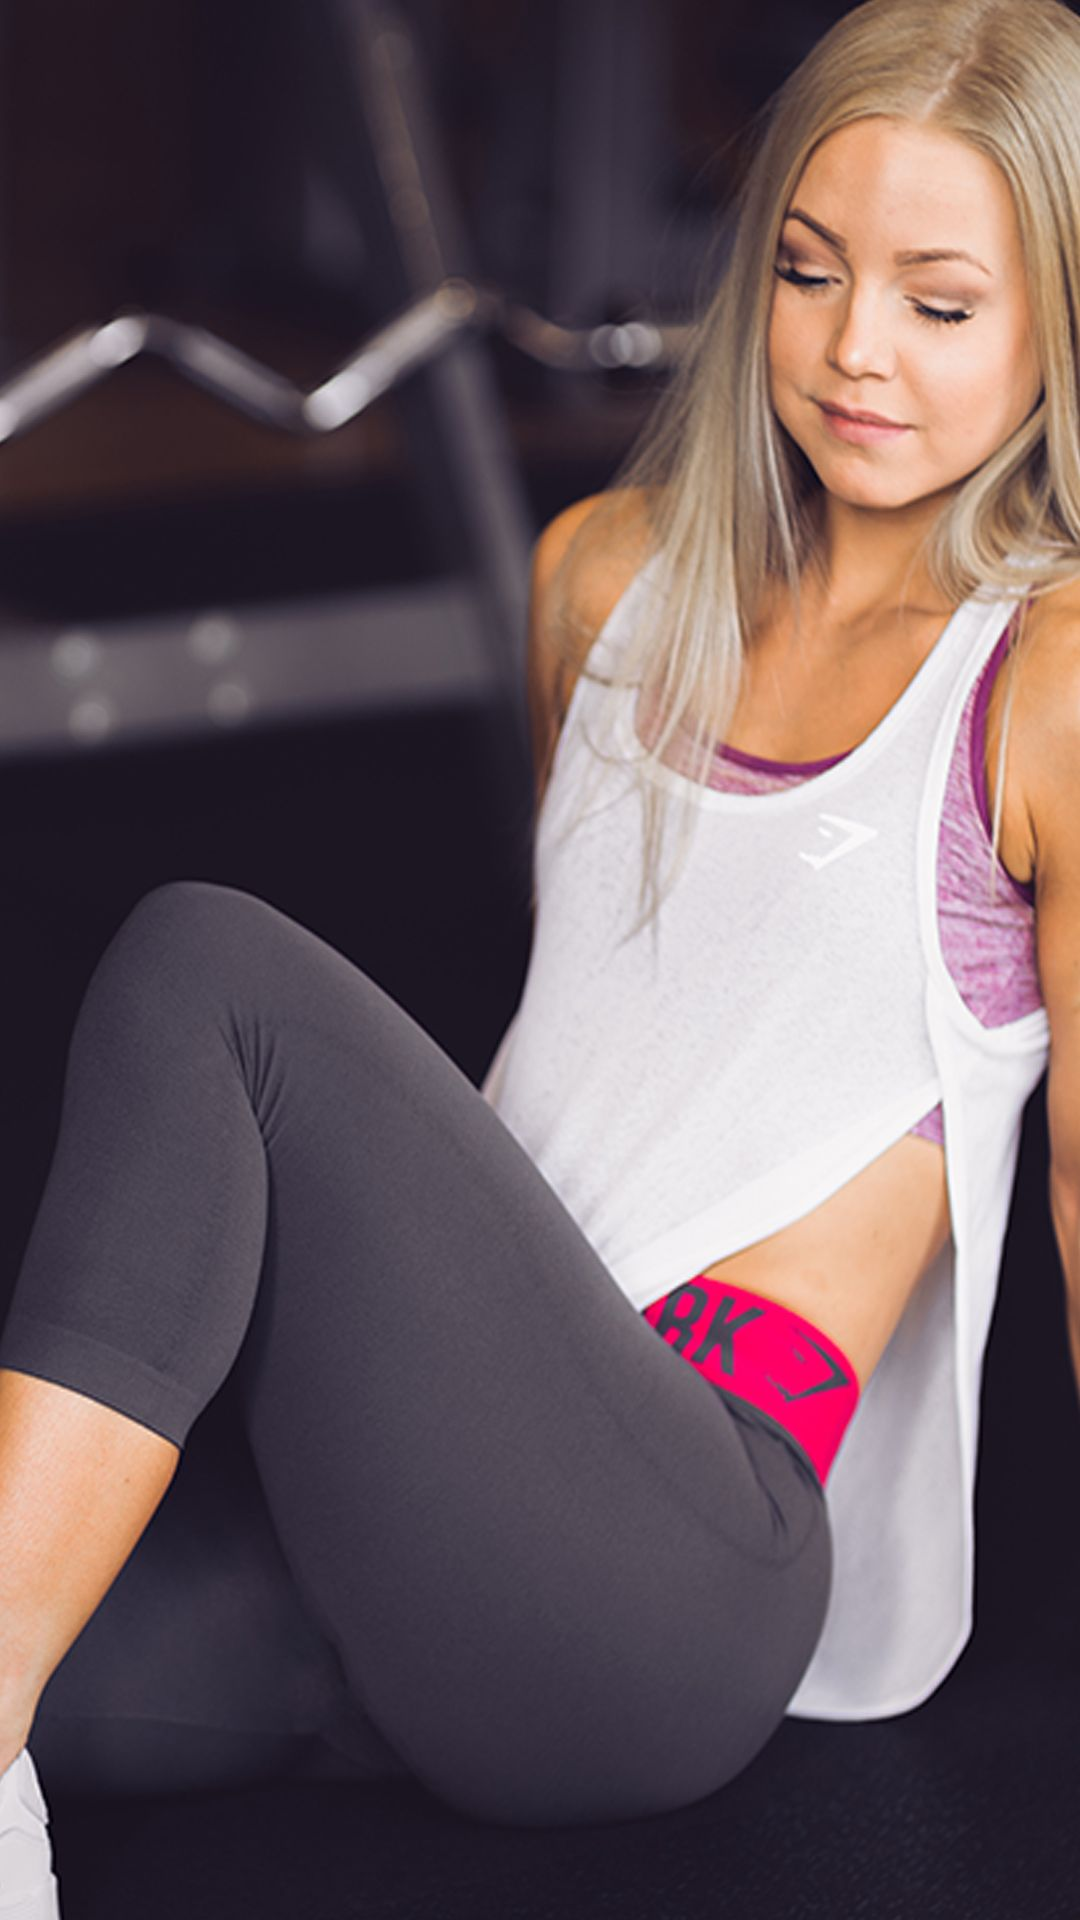 Denice Moberg working out in the Gymshark Fit cropped leggings in Charcoal/Cranberry. On trend fitness leggings with elasticated performance waistband.